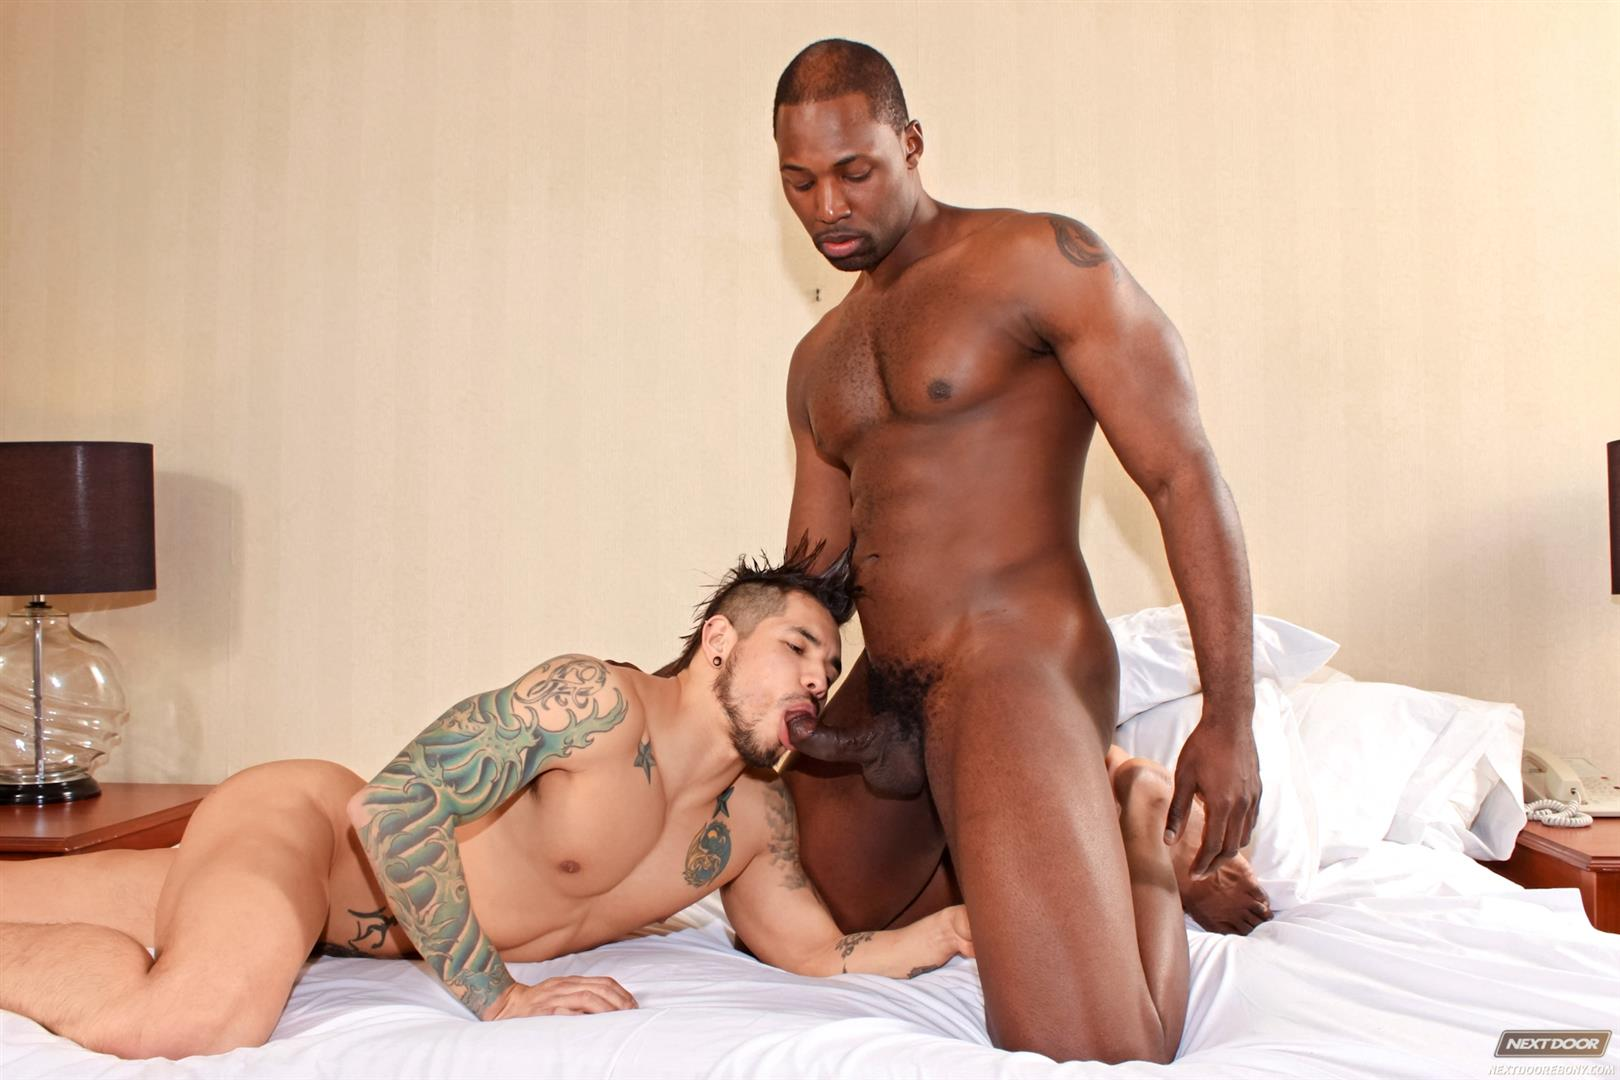 Next-Door-Ebony-Nubius-and-Draven-Torres-Big-Black-Cock-Fucking-Tight-Latino-Ass-Amateur-Gay-Porn-09 Big Black Bull Fucks A Young Latino Hipster With His Big Black Cock